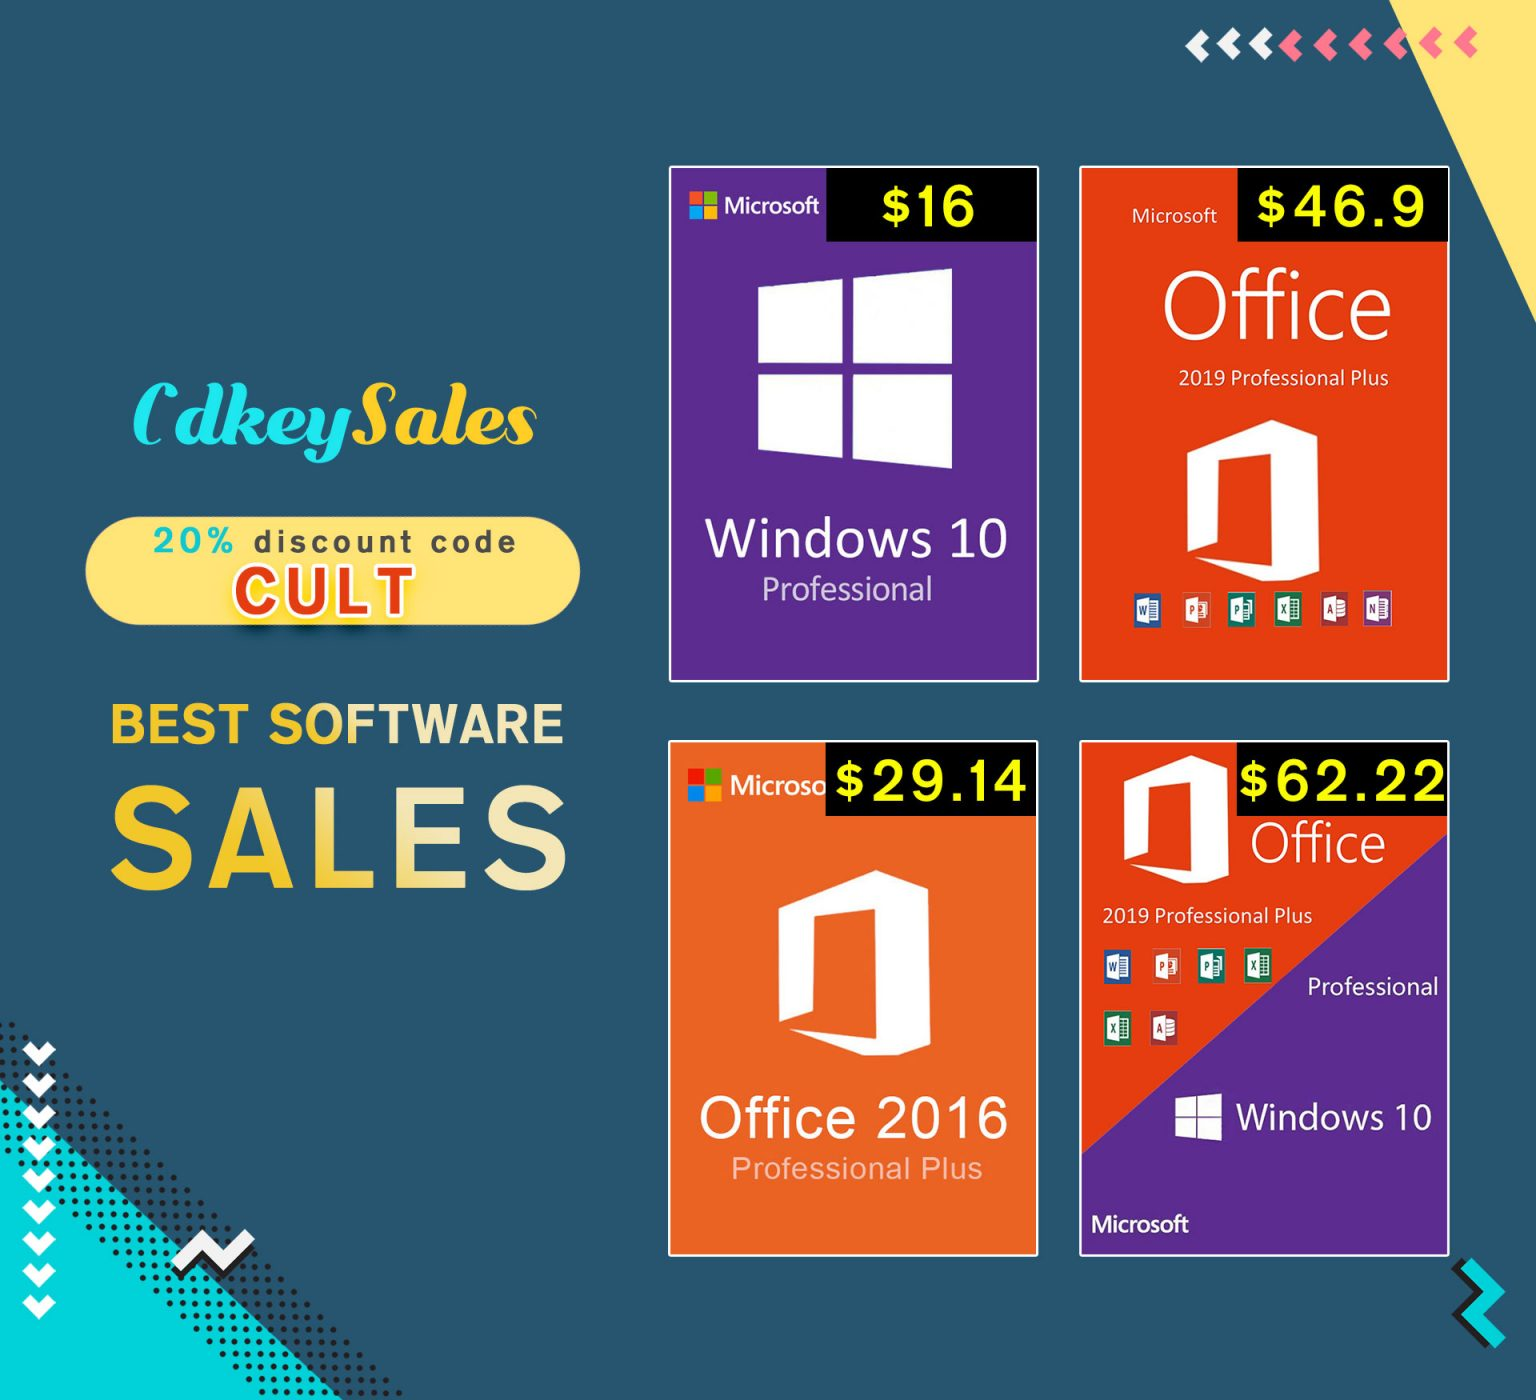 You can now save 20% off Microsoft Officevand Windows activation keys at CdkeySales.com.